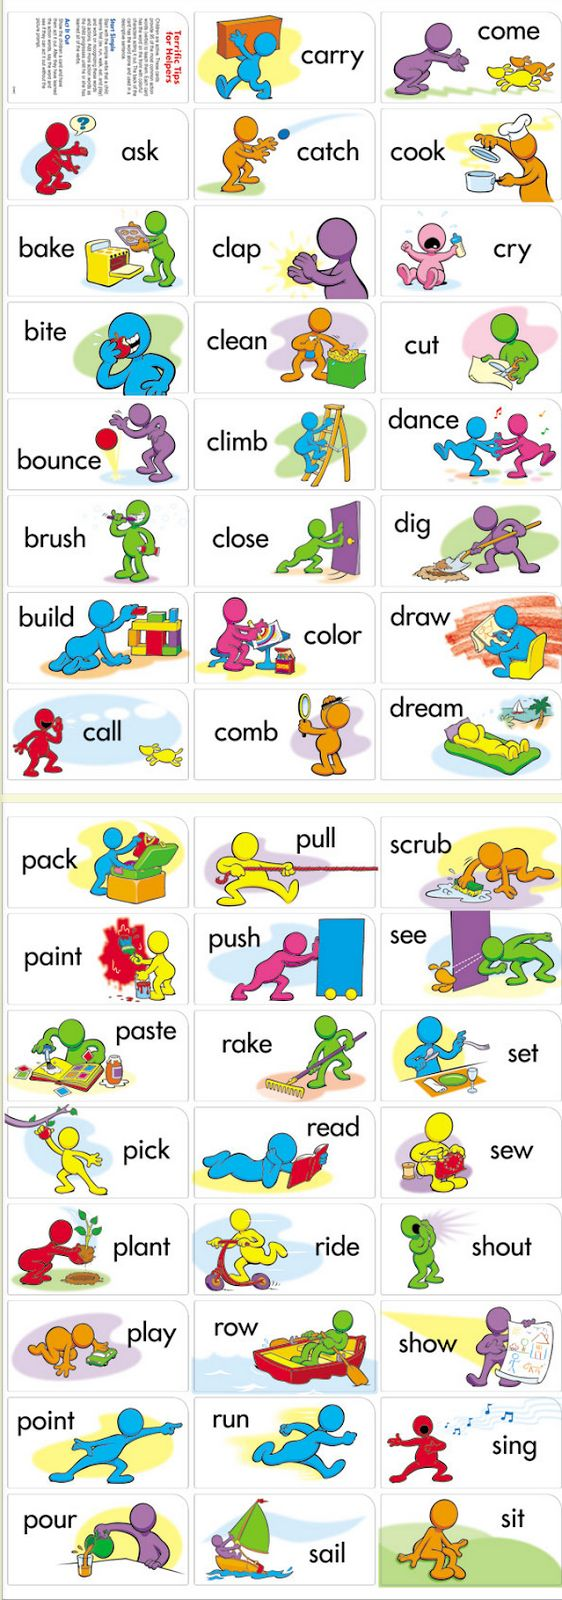 Action Verbs Fascinating Nydia Baez Nydia_Cello On Pinterest